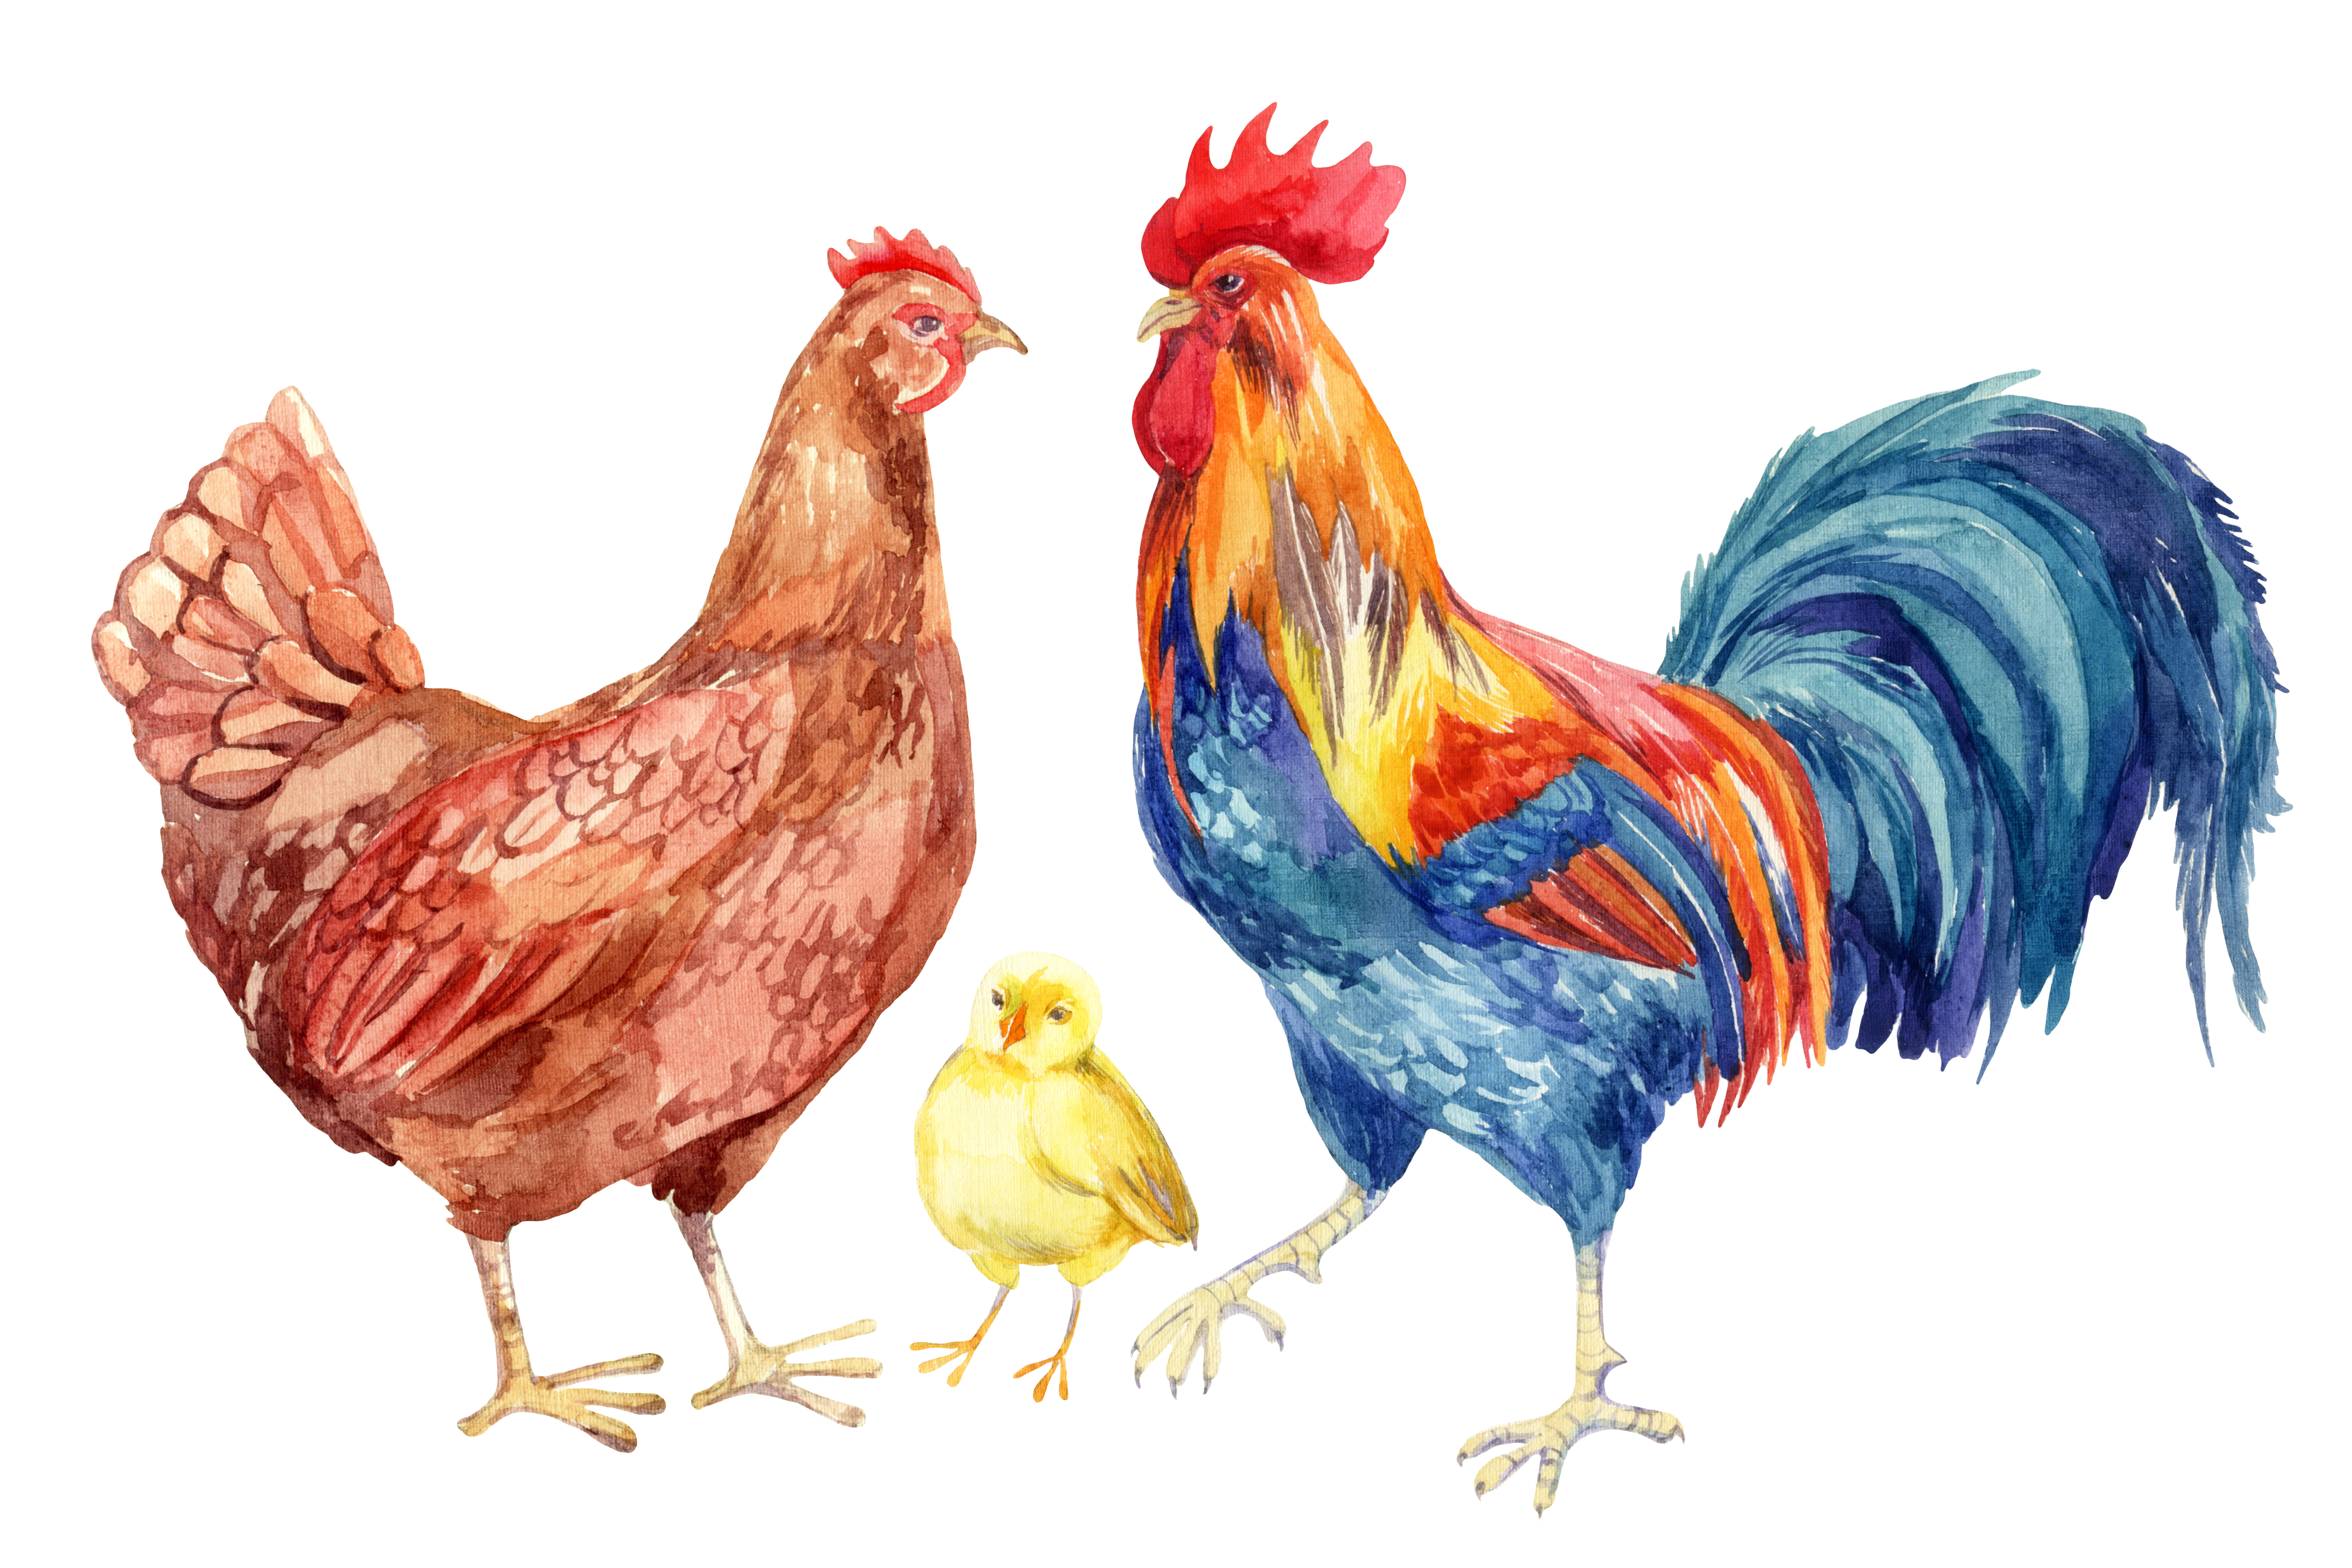 Mature poultry roosters